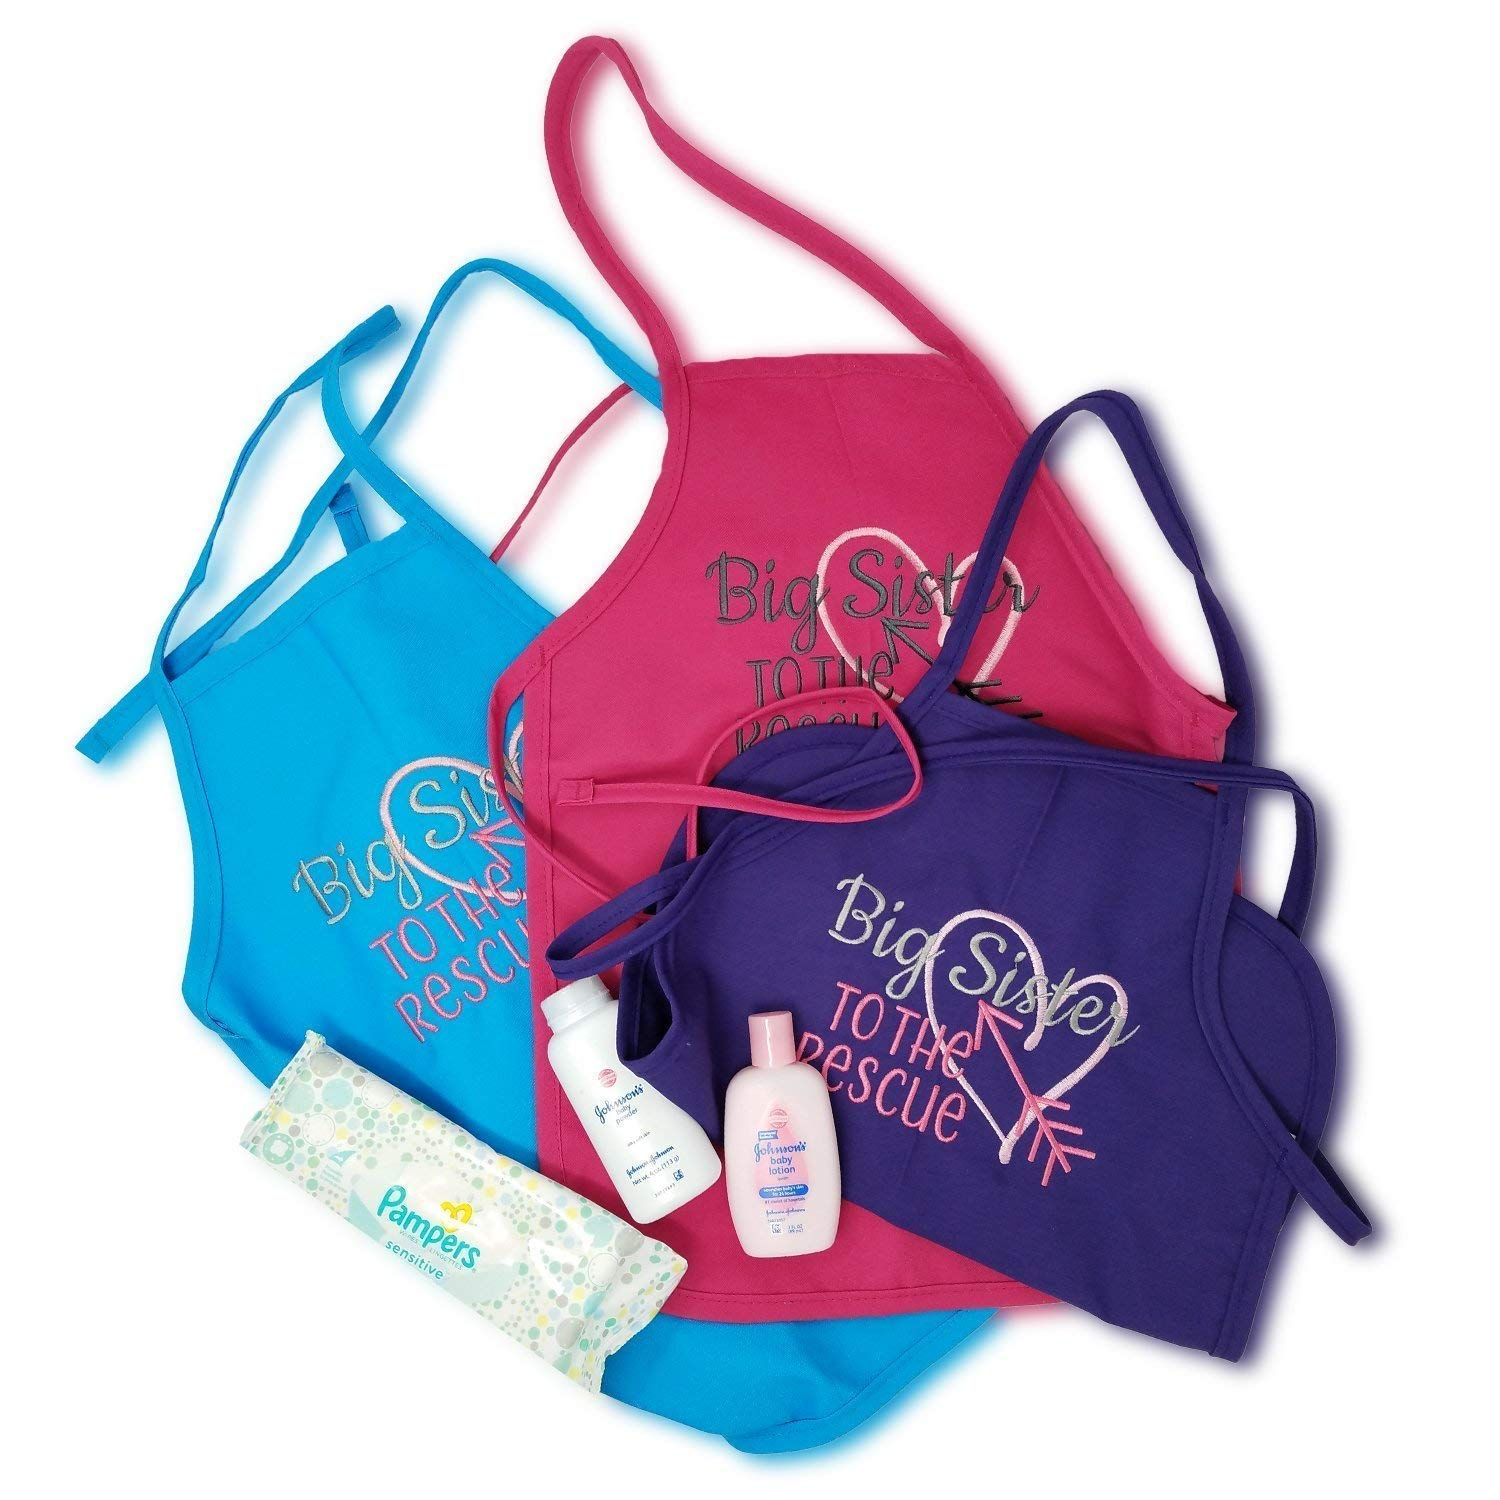 Big sister gifts, Apron for kids, Sister aprons, Sister apparel, Big sister gifts for little girls